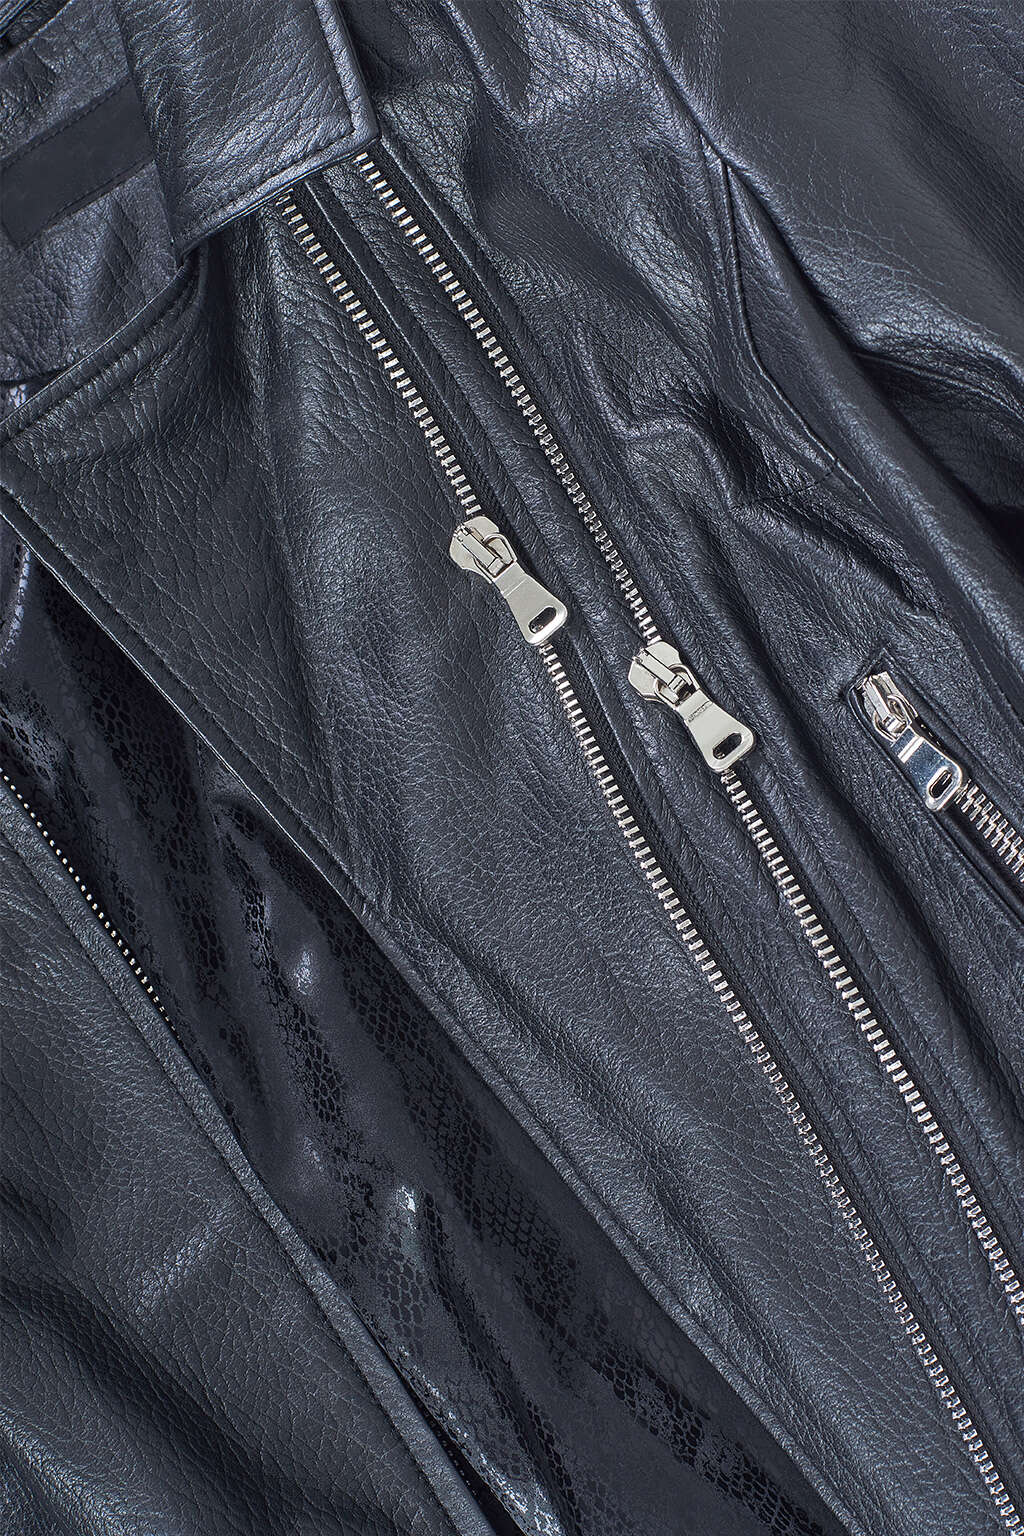 Zipper and Inner Lining Detail of Black Collared Biker Leather Jacket